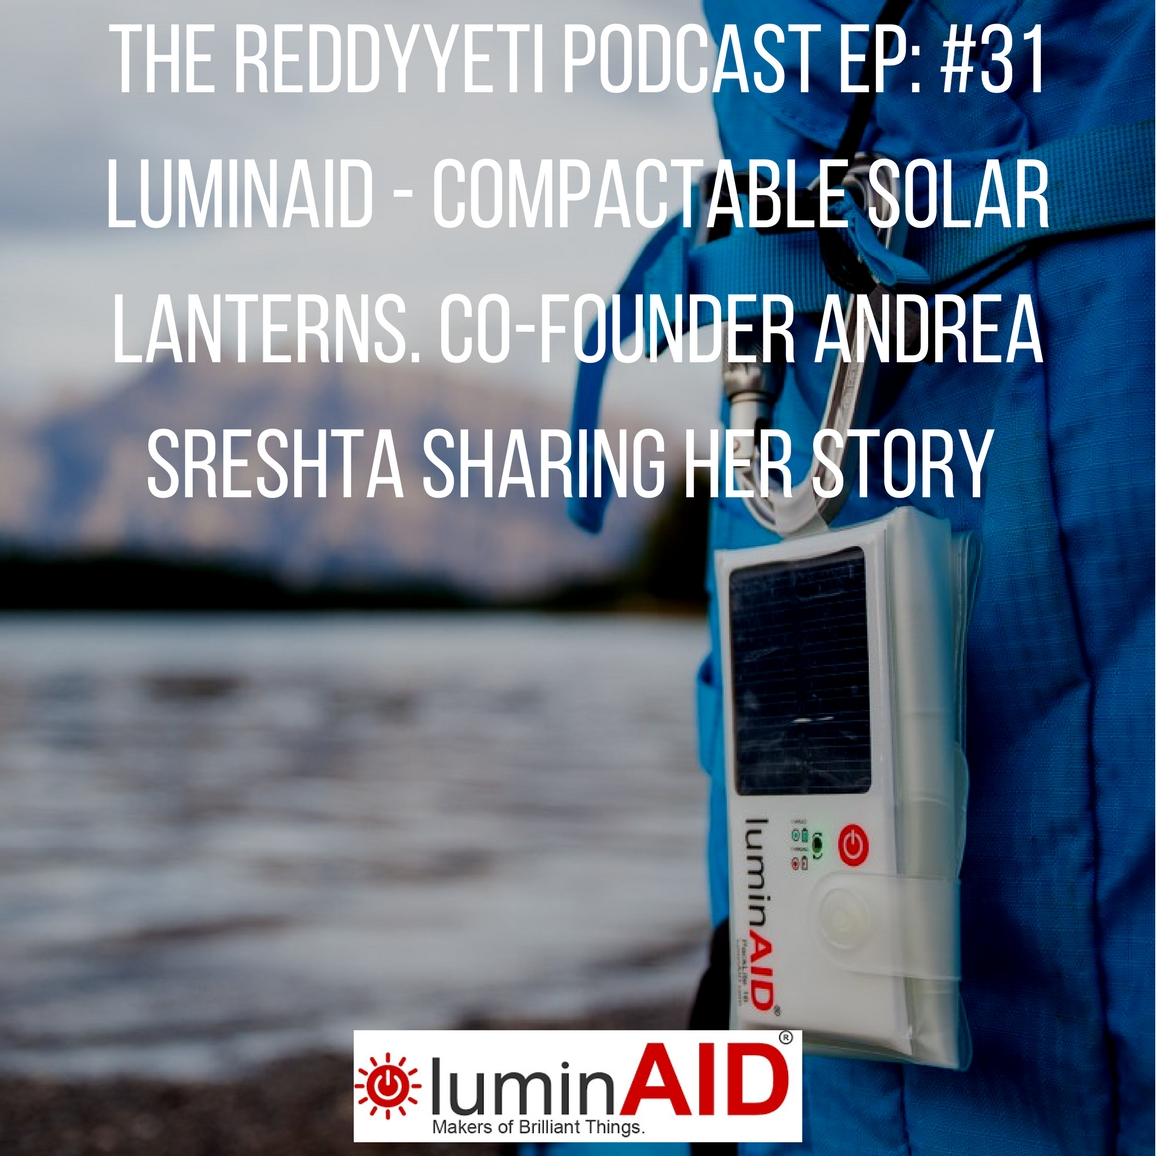 LuminAId Podcast episode Image.jpg